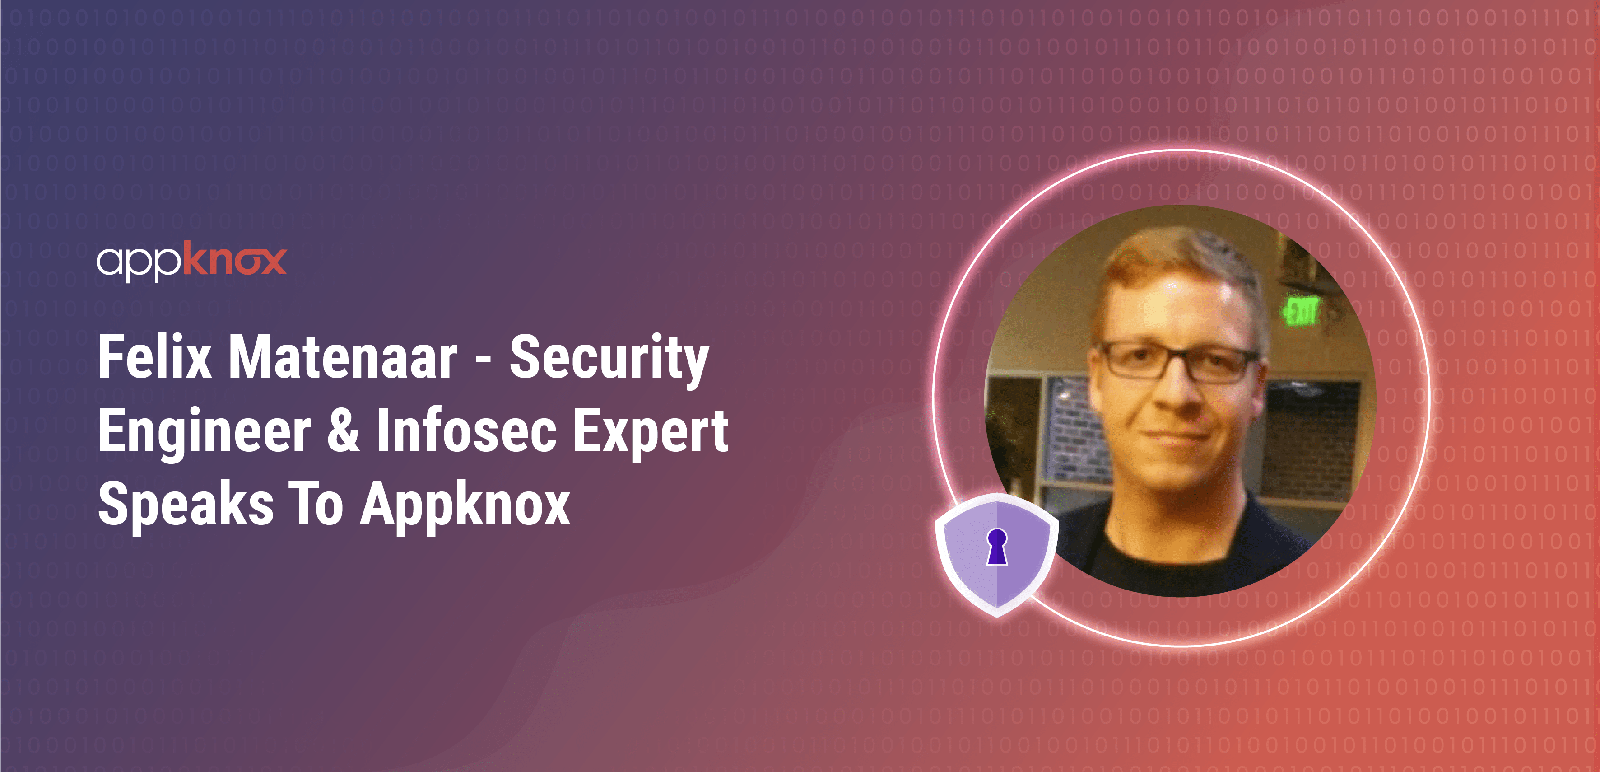 Felix Matenaar - Security Engineer & Infosec Expert Speaks To Appknox